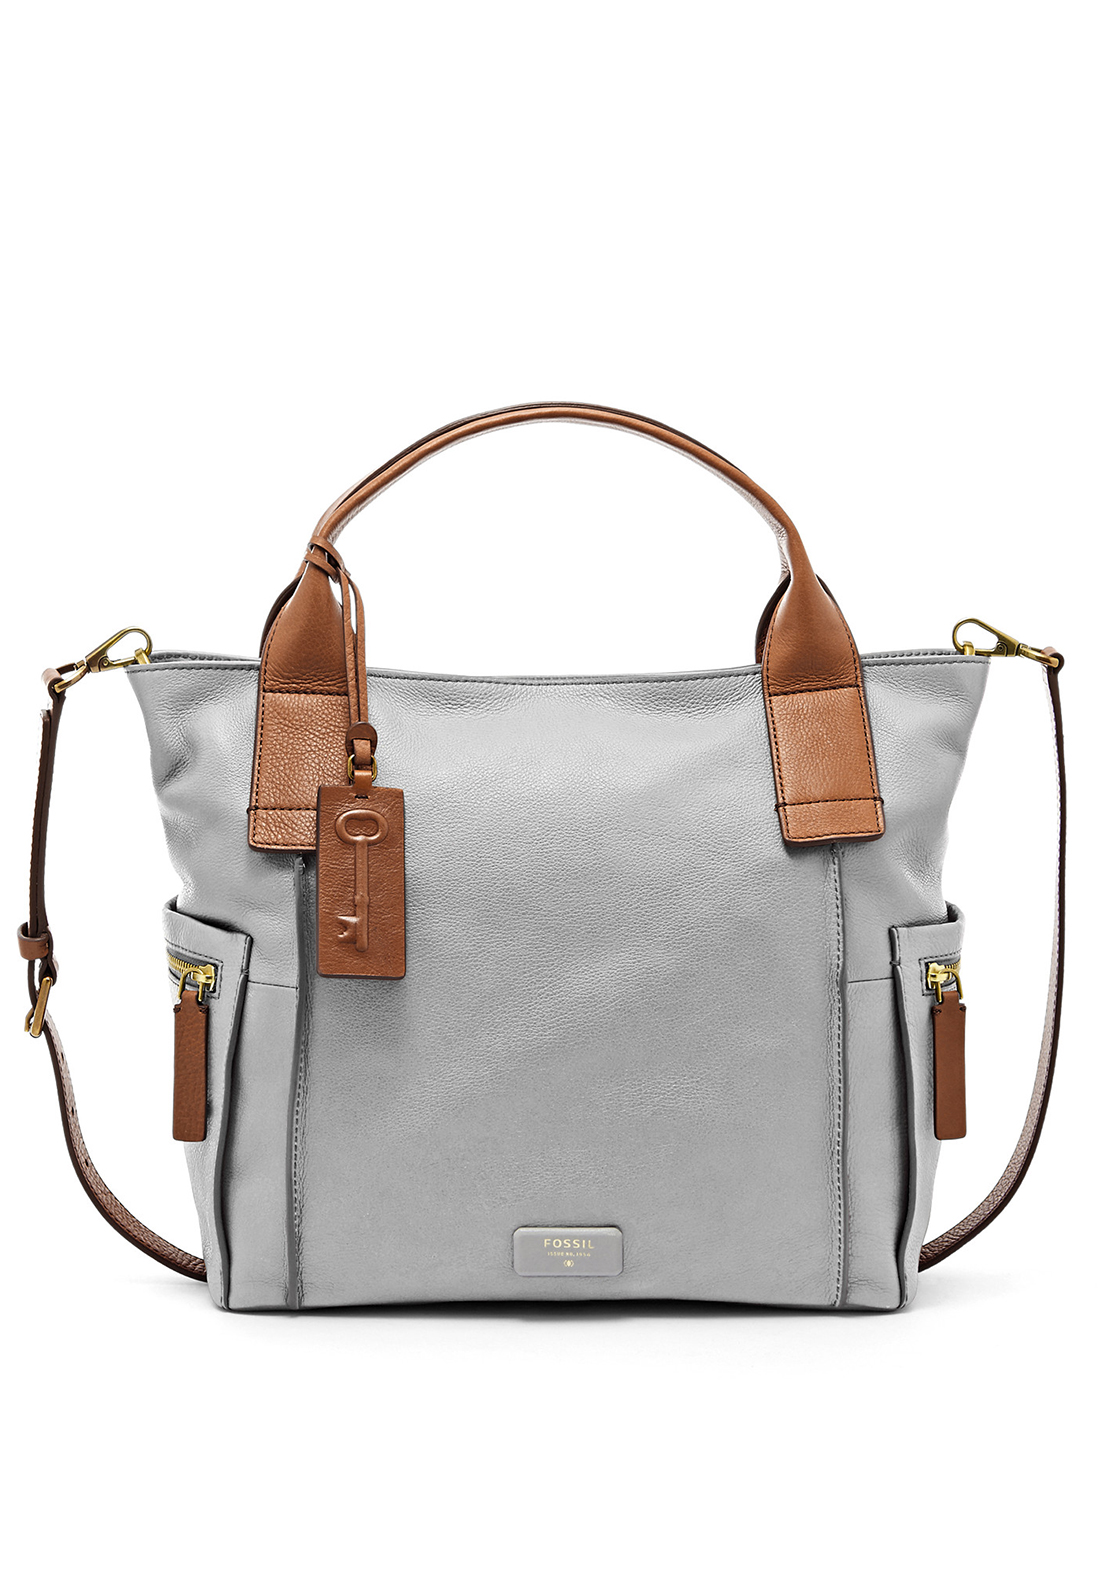 Fossil Emerson Leather Satchel Bag, Iron